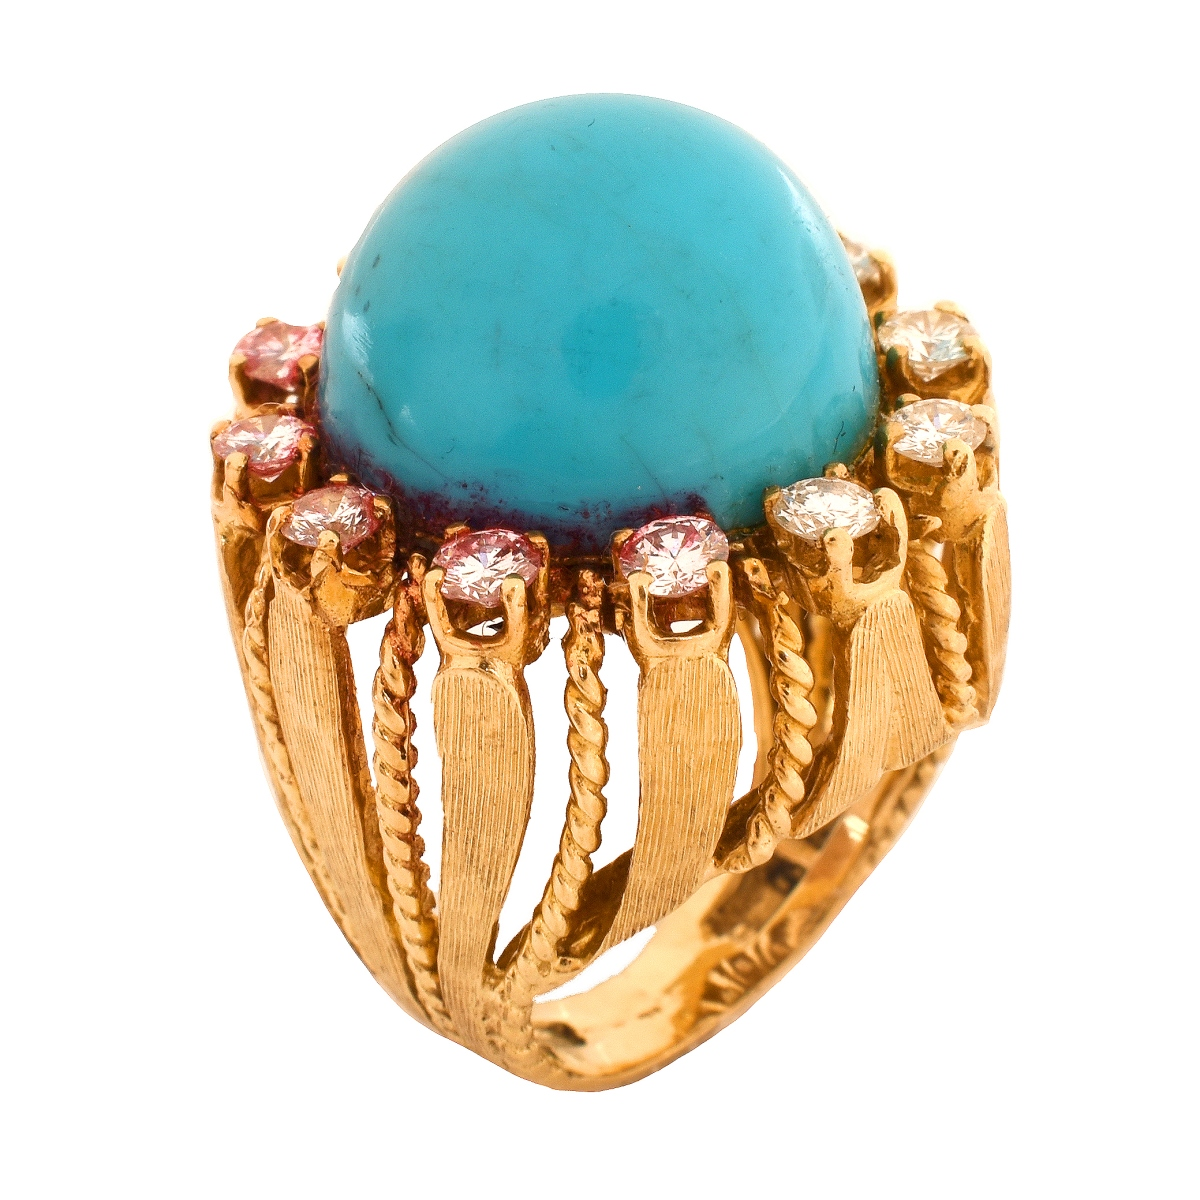 Vintage Turquoise, Diamond and 14K Ring